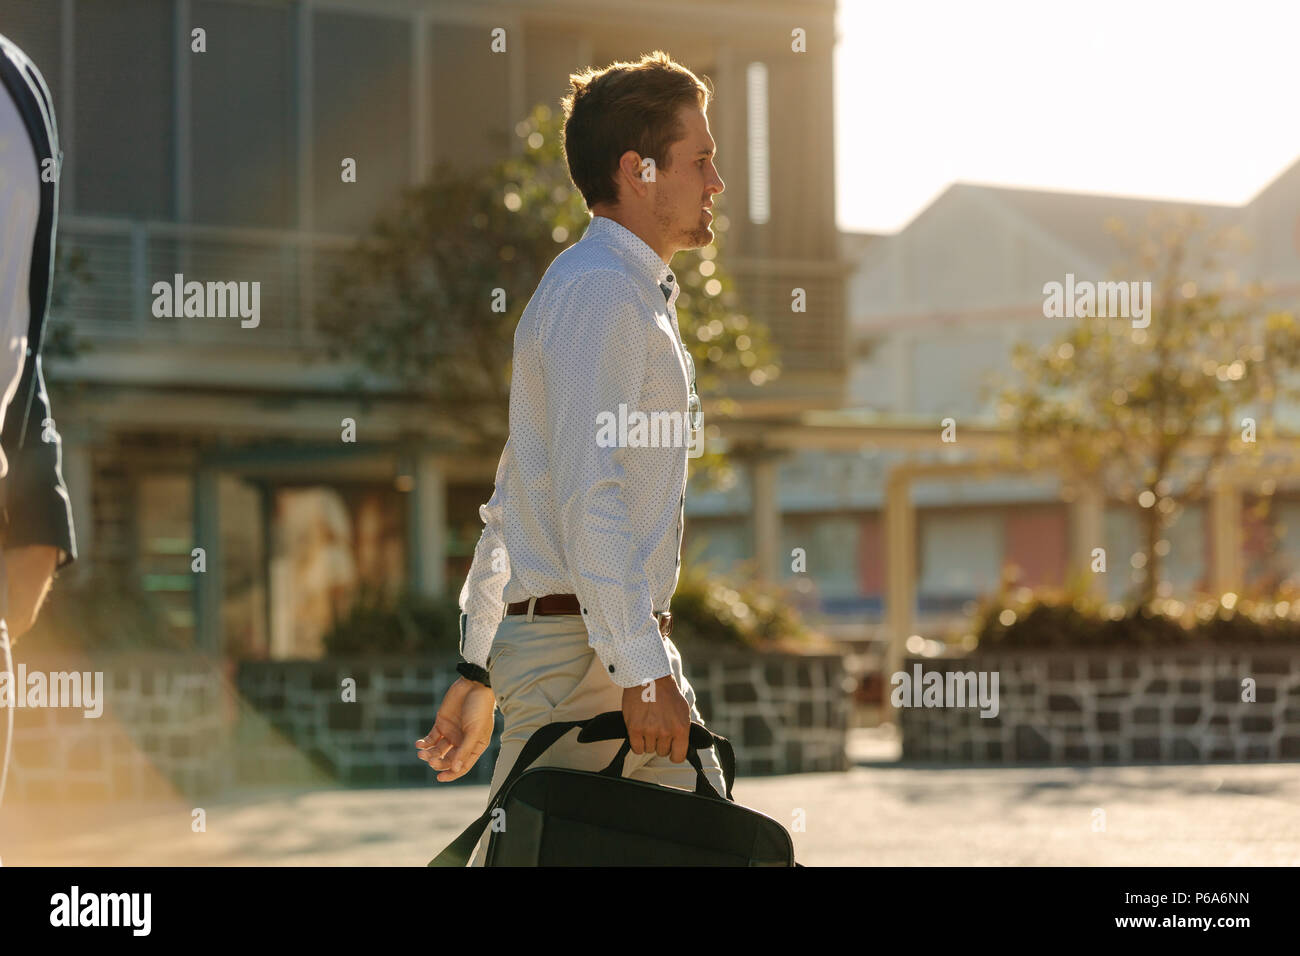 Man commuting to office carrying his office bag. Man in formal clothes walking on street to office in the morning with sun flare in the background. - Stock Image